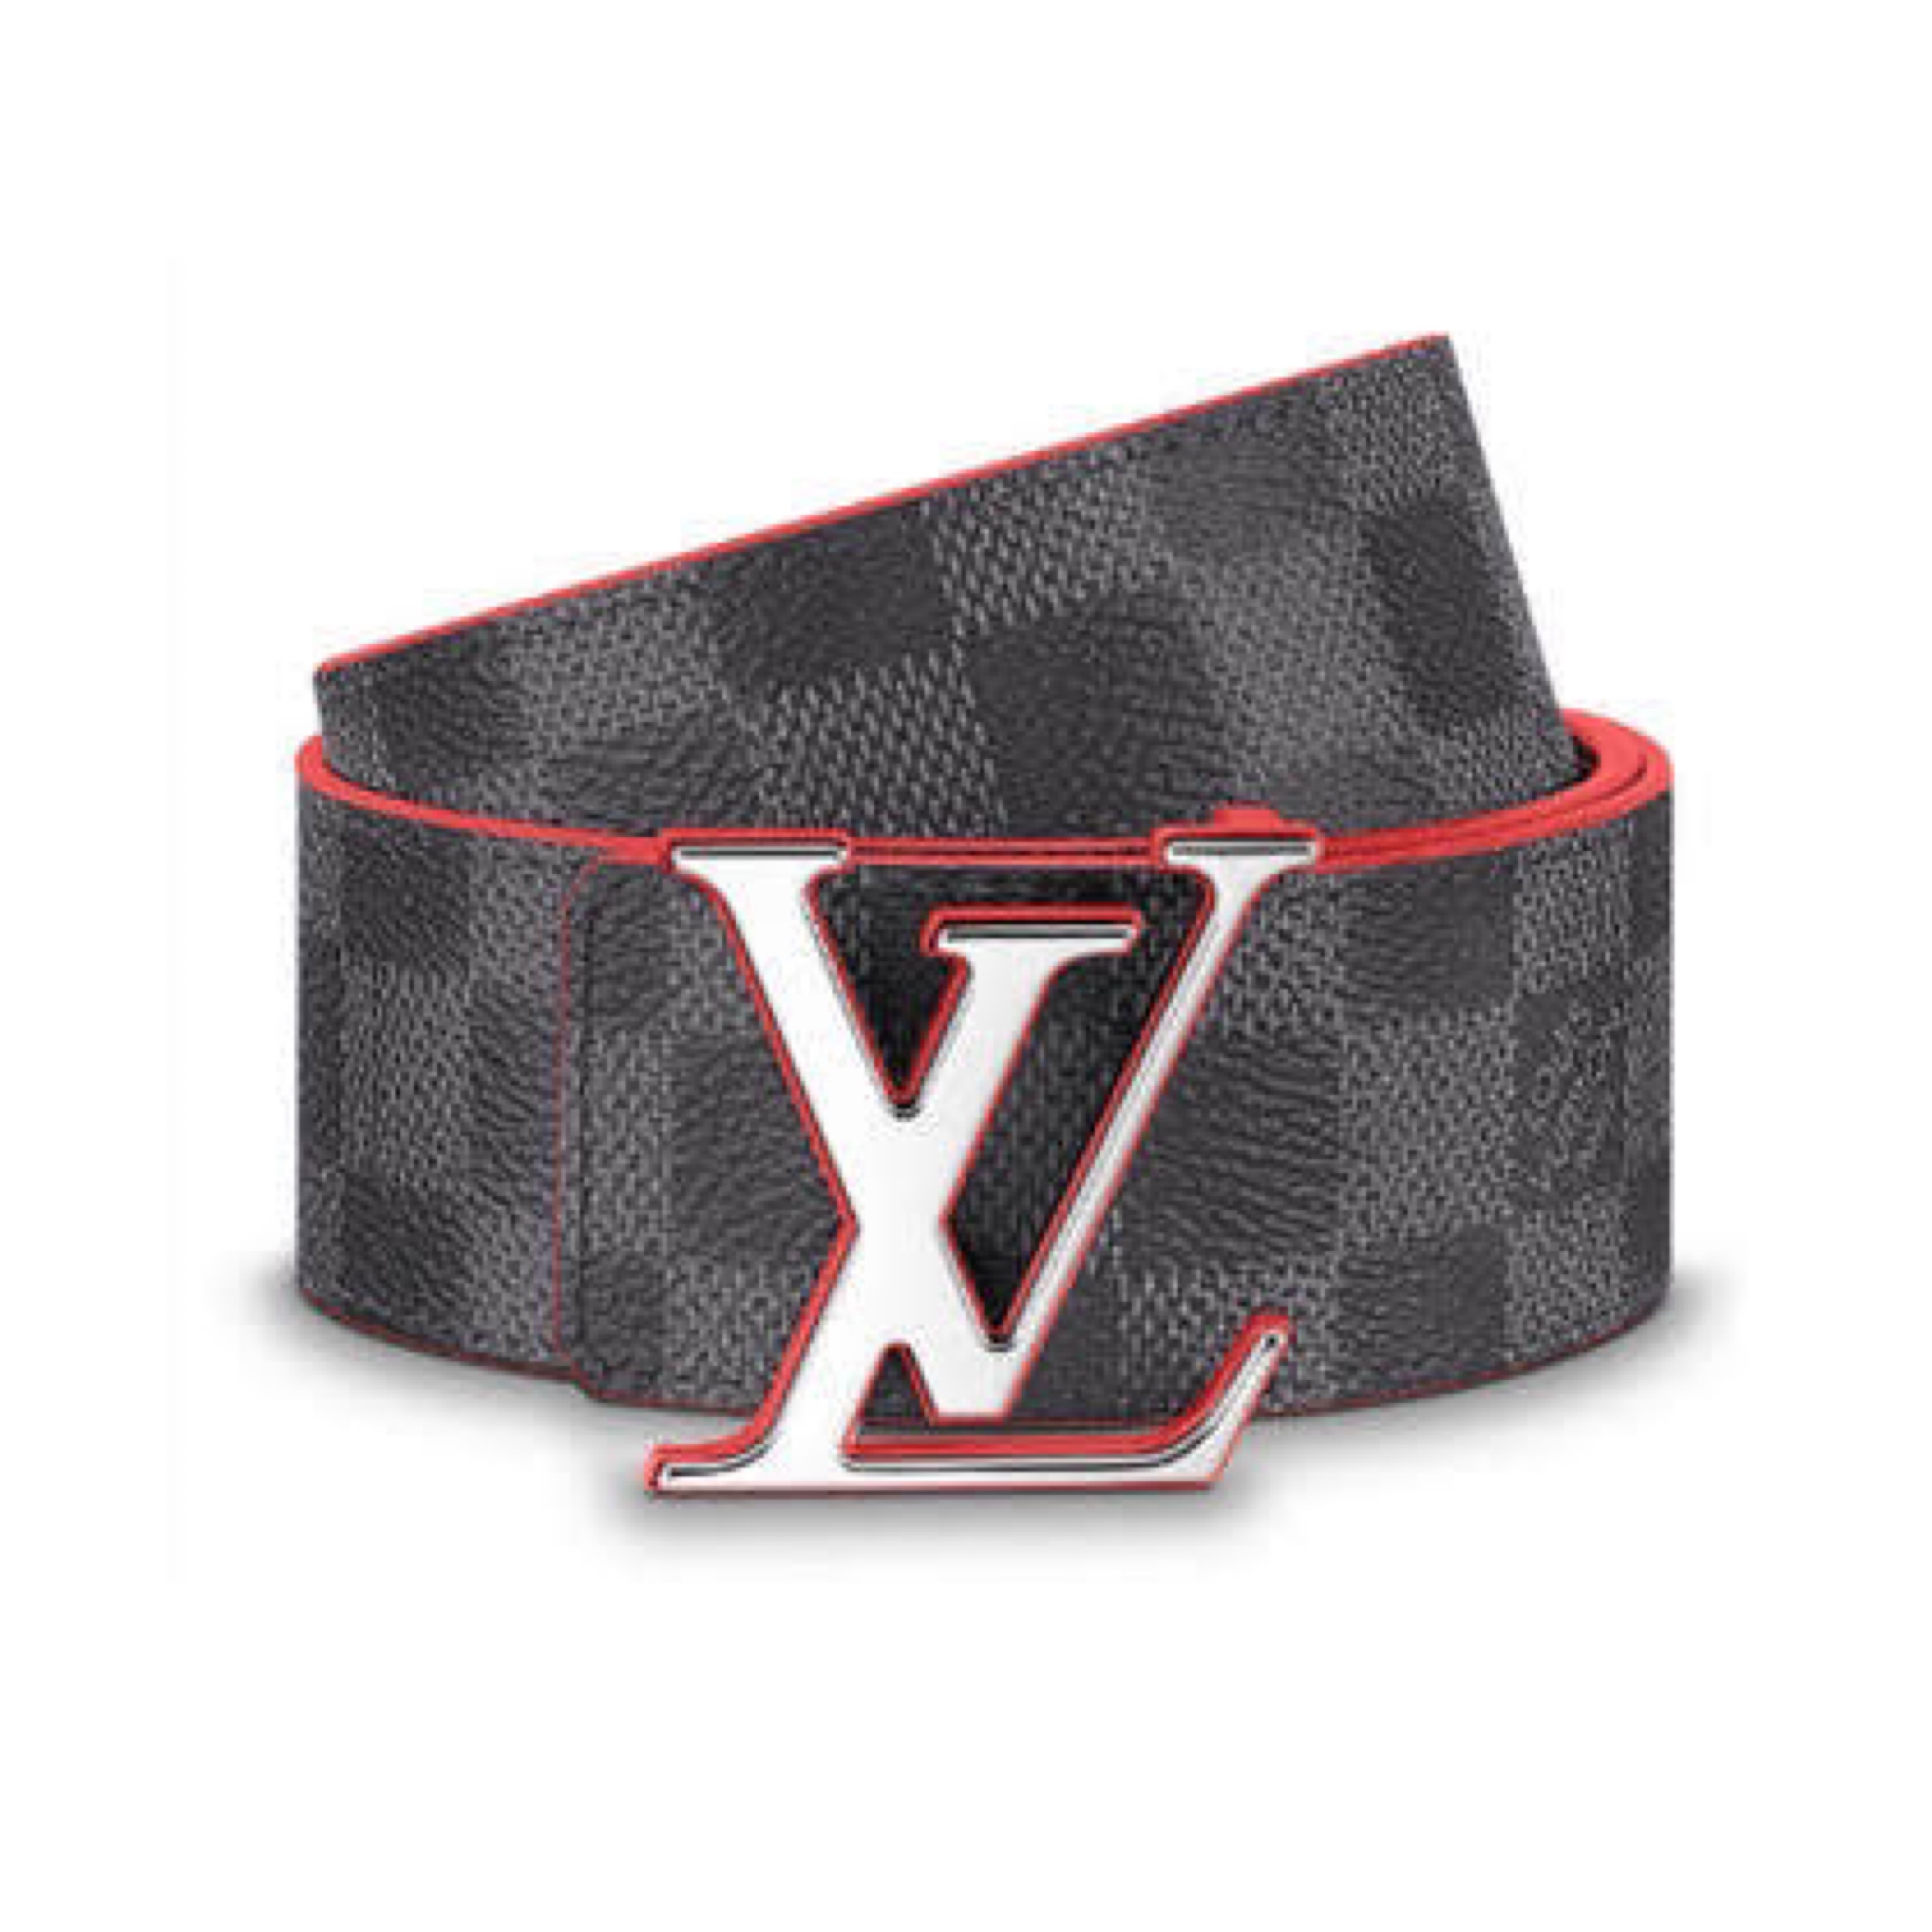 Louis Vuitton Reversible Belt